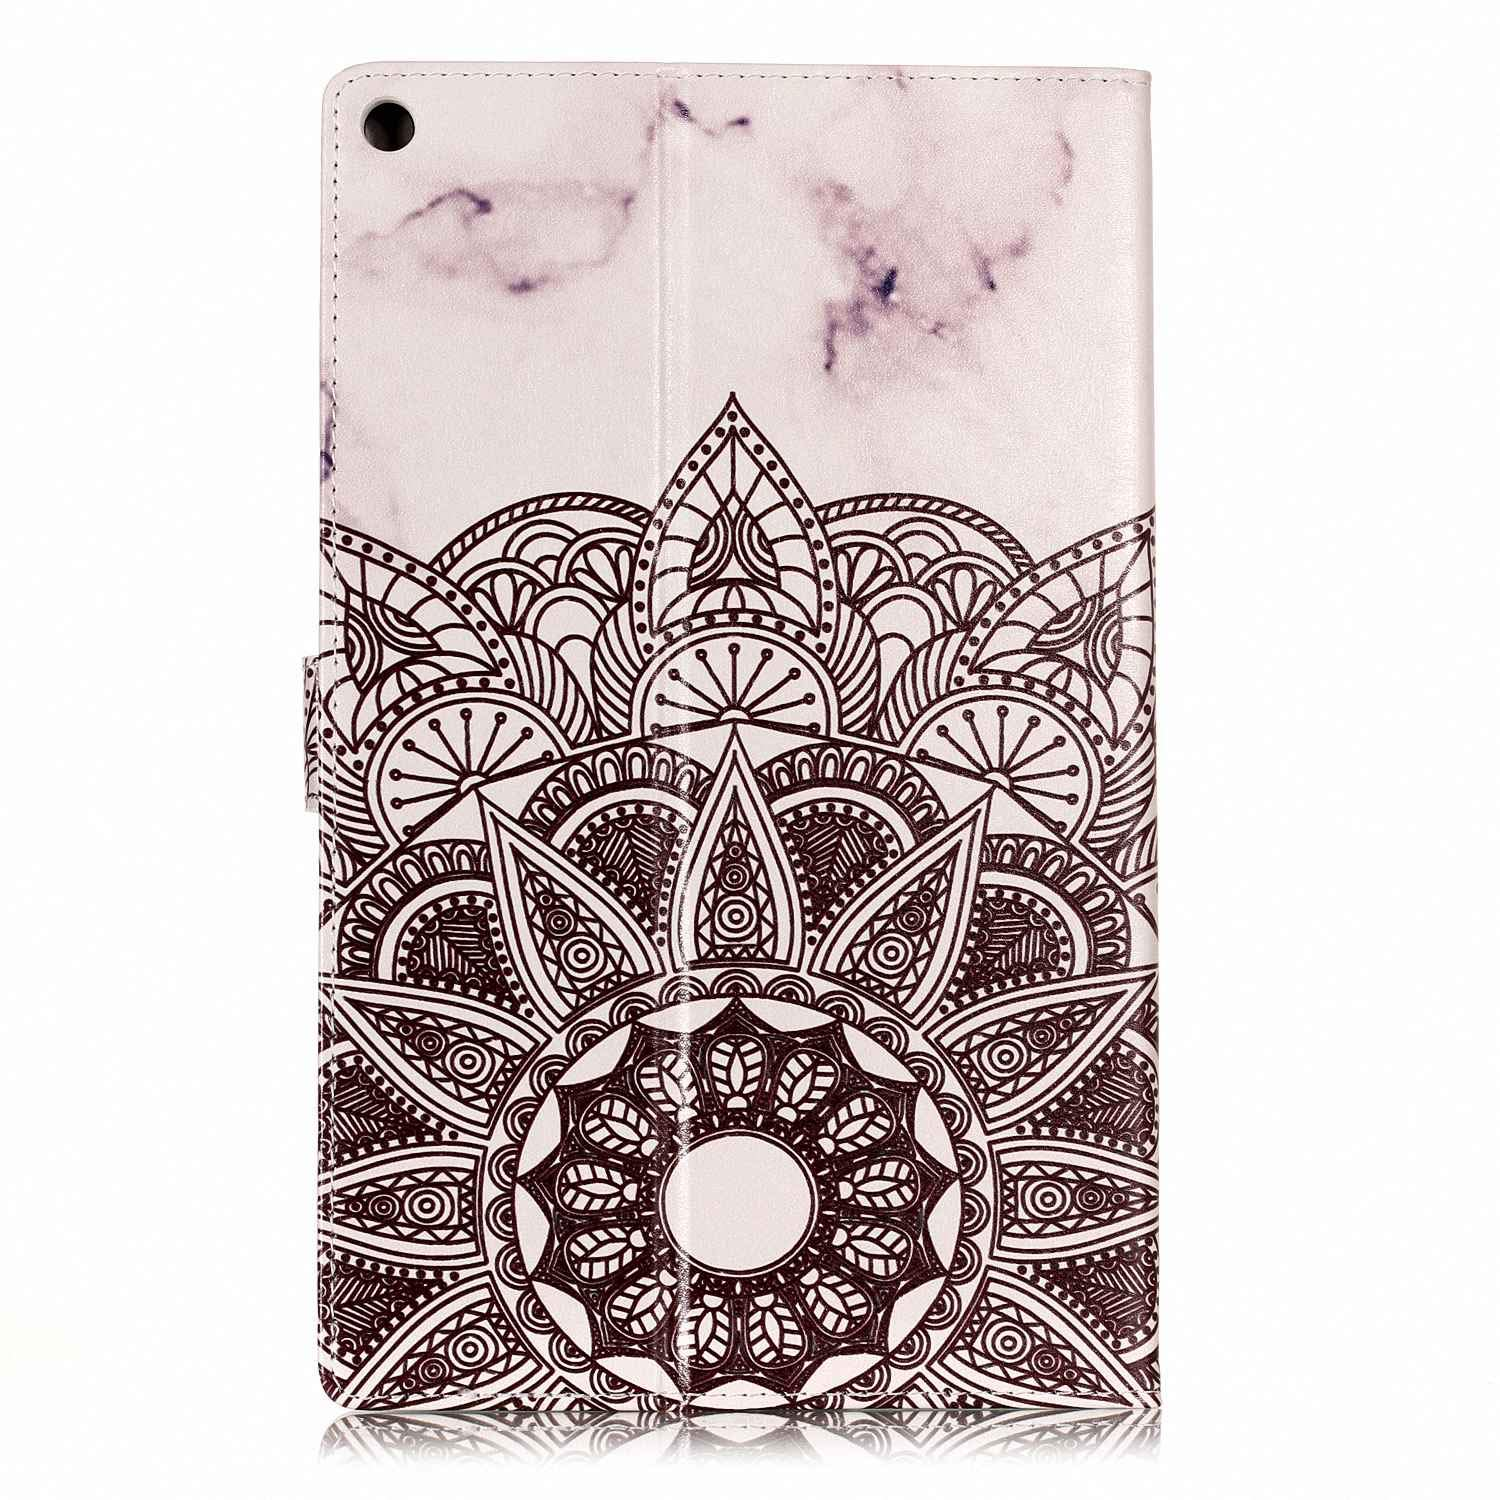 Rose Gold White Marble HD 10 Case Premium PU Leather Ultra Slim Smart Stand Cover with Auto Wake//Sleep for All-New  Fire HD 10 Tablet 7th Generation 2017 // 5th Generation 2015